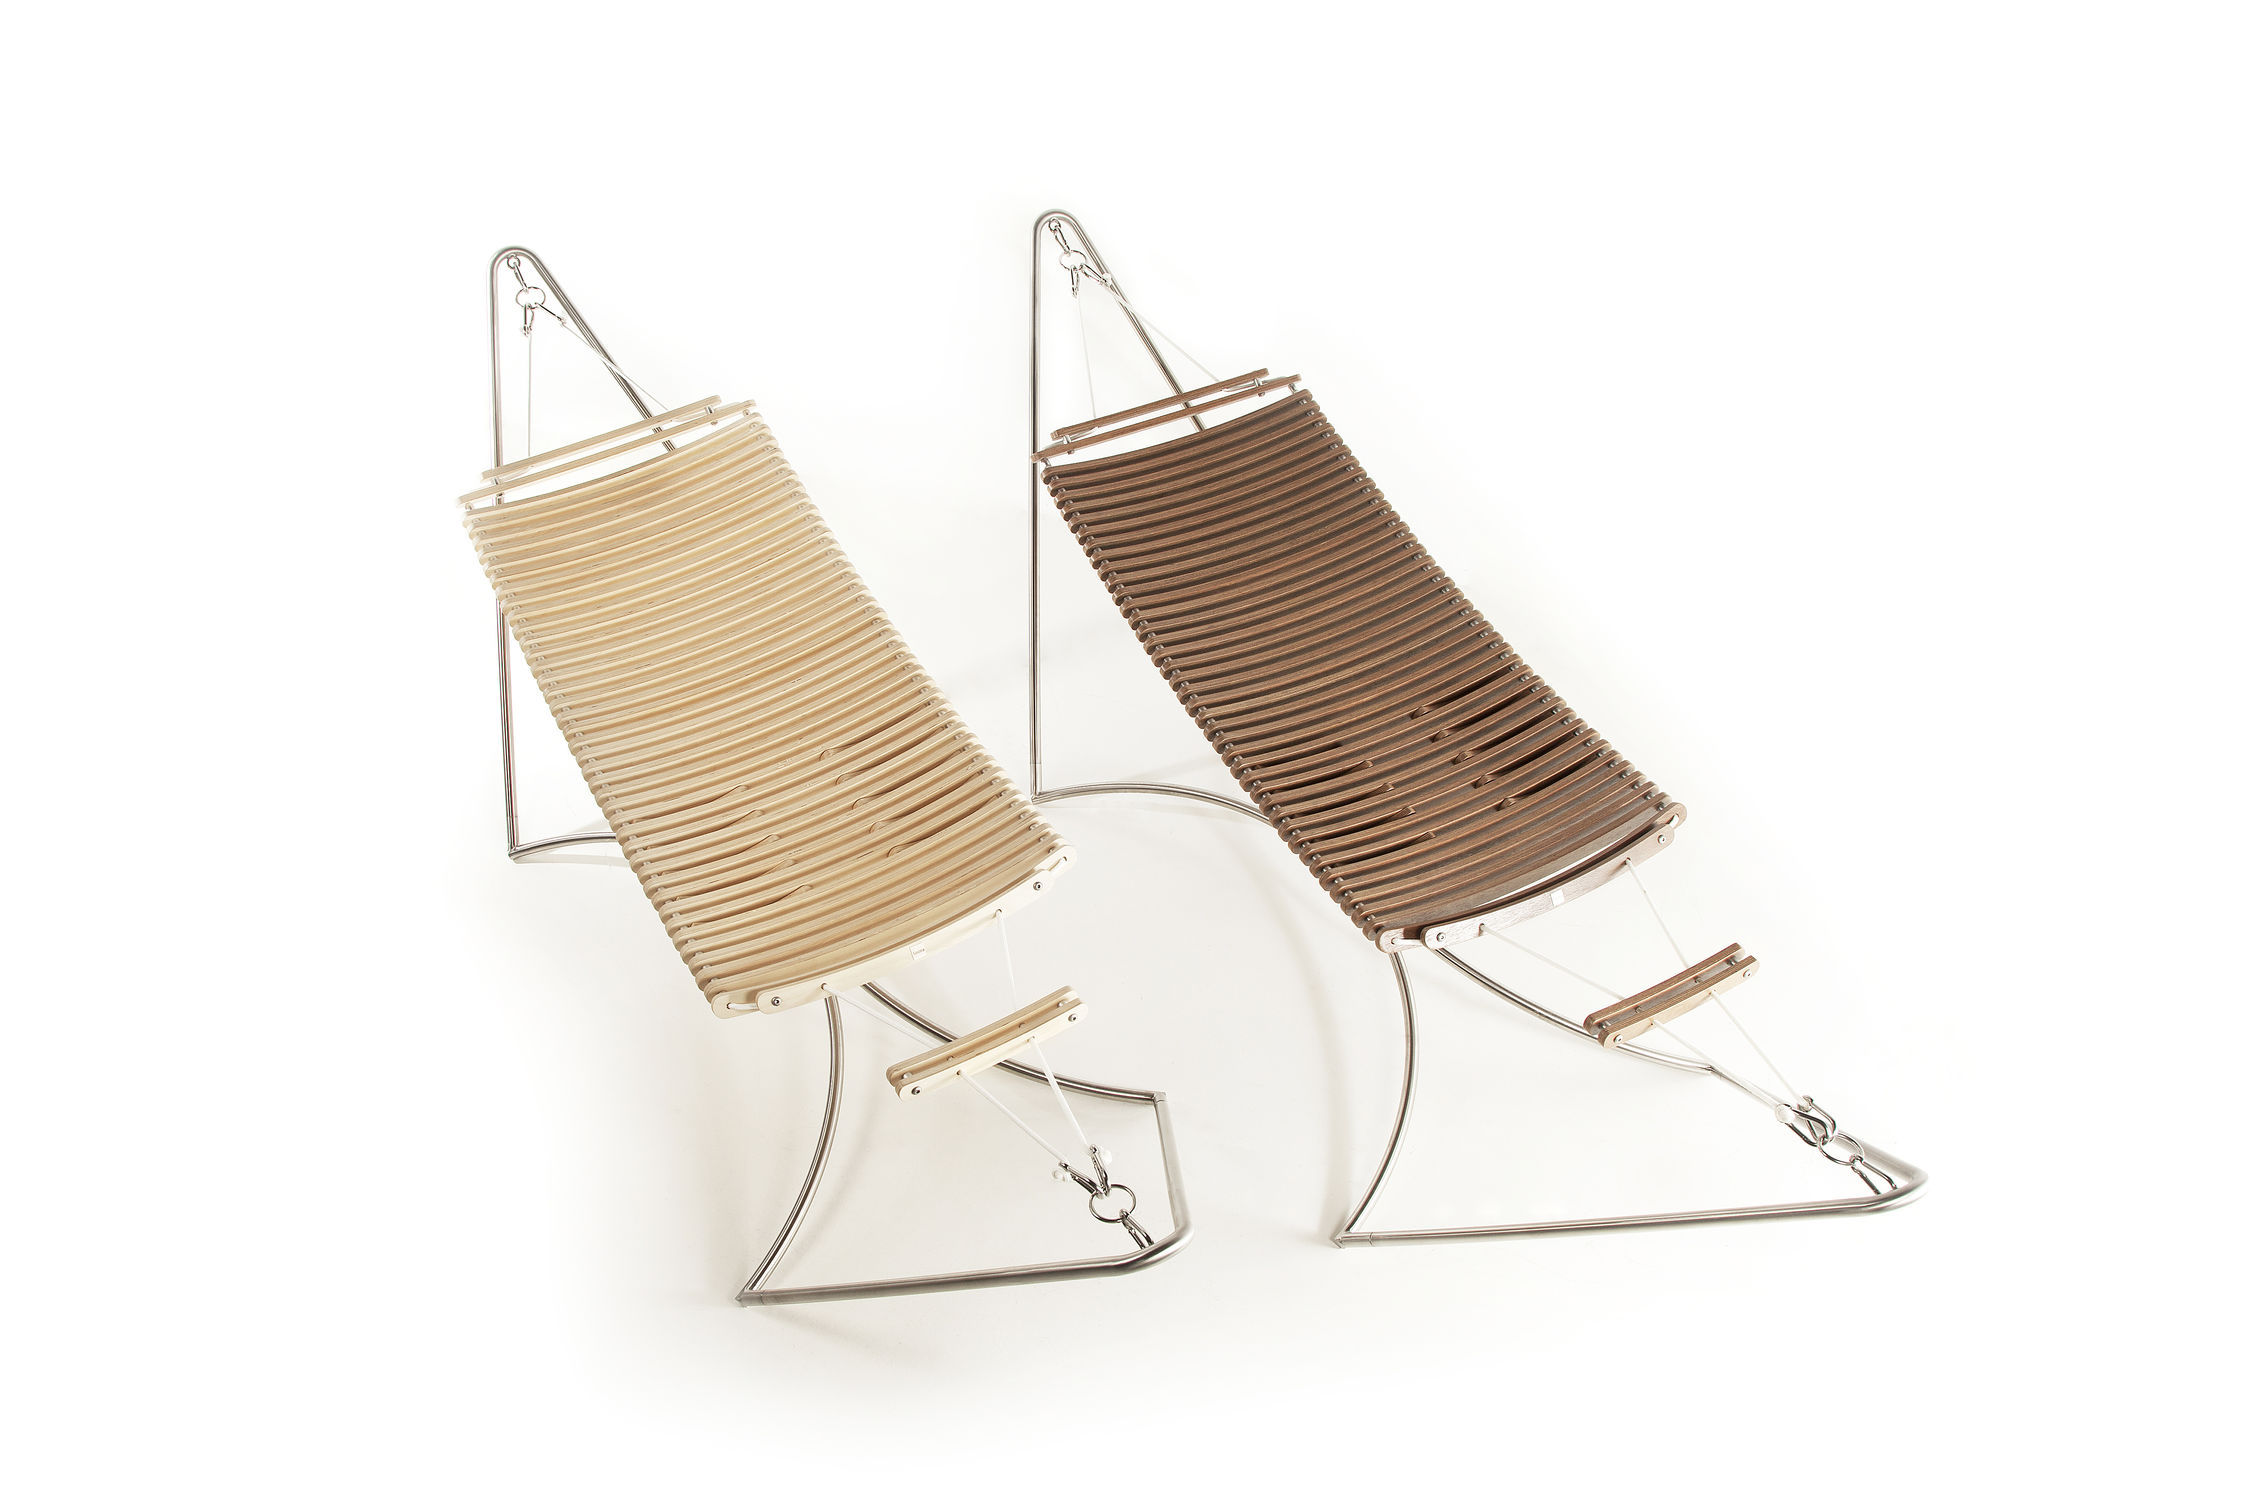 double free stand hammock chair day standing portia ideas stylish